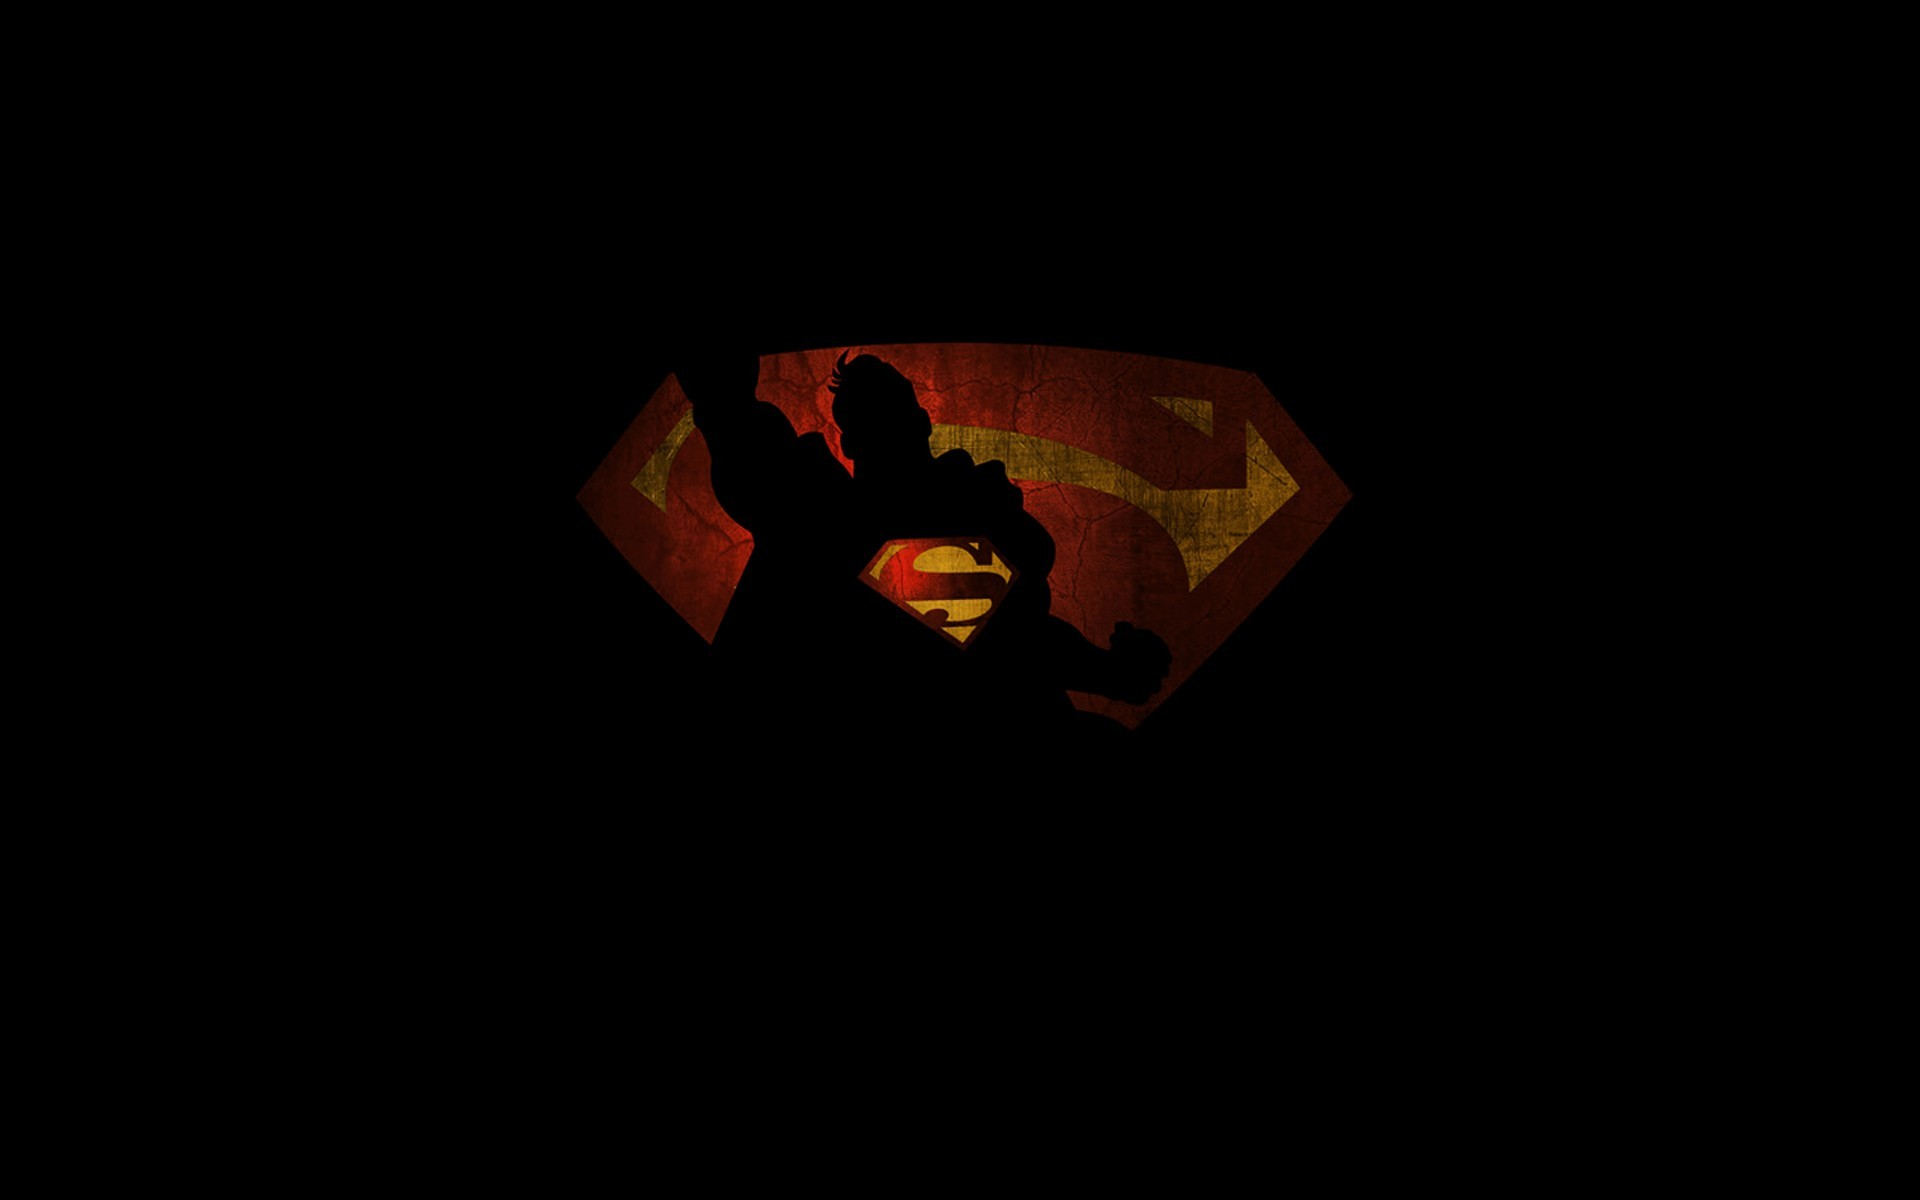 1920x1200 superman wallpaper red wallpaper batman vs superman dark superman .